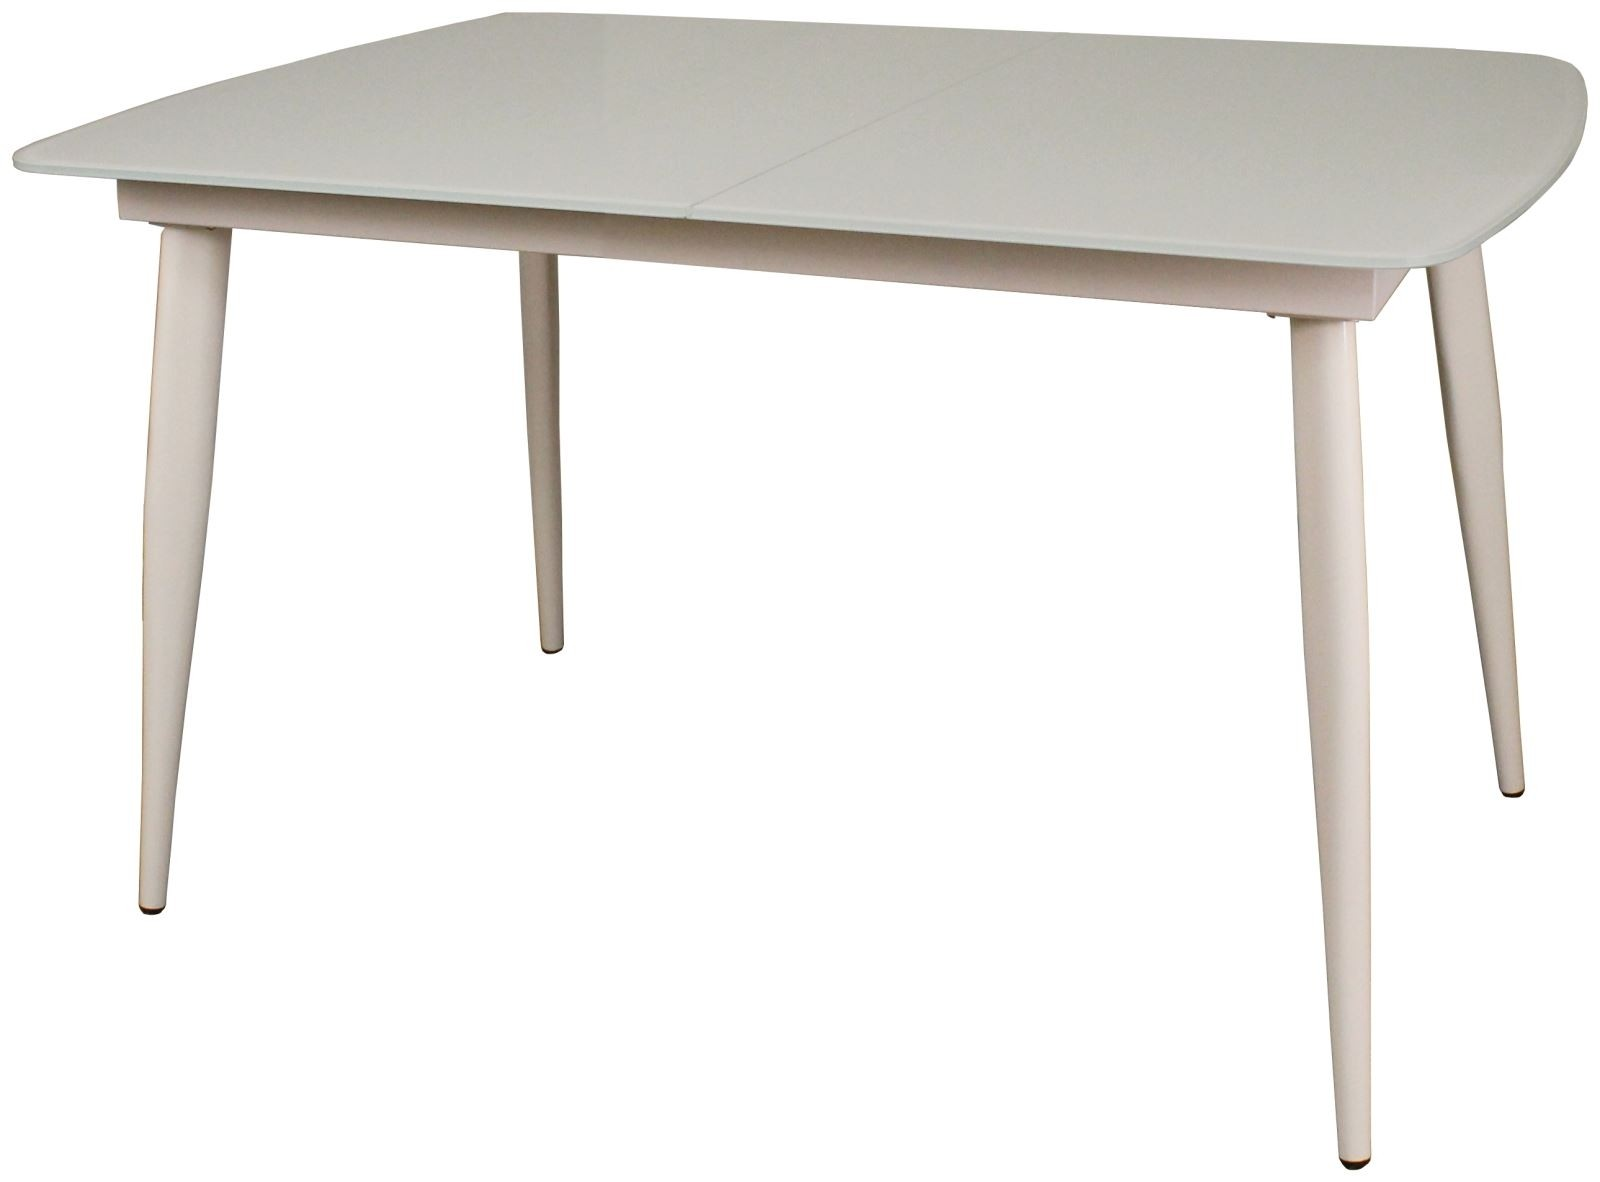 CONTEMPORARY Small Extending Dining Table - White